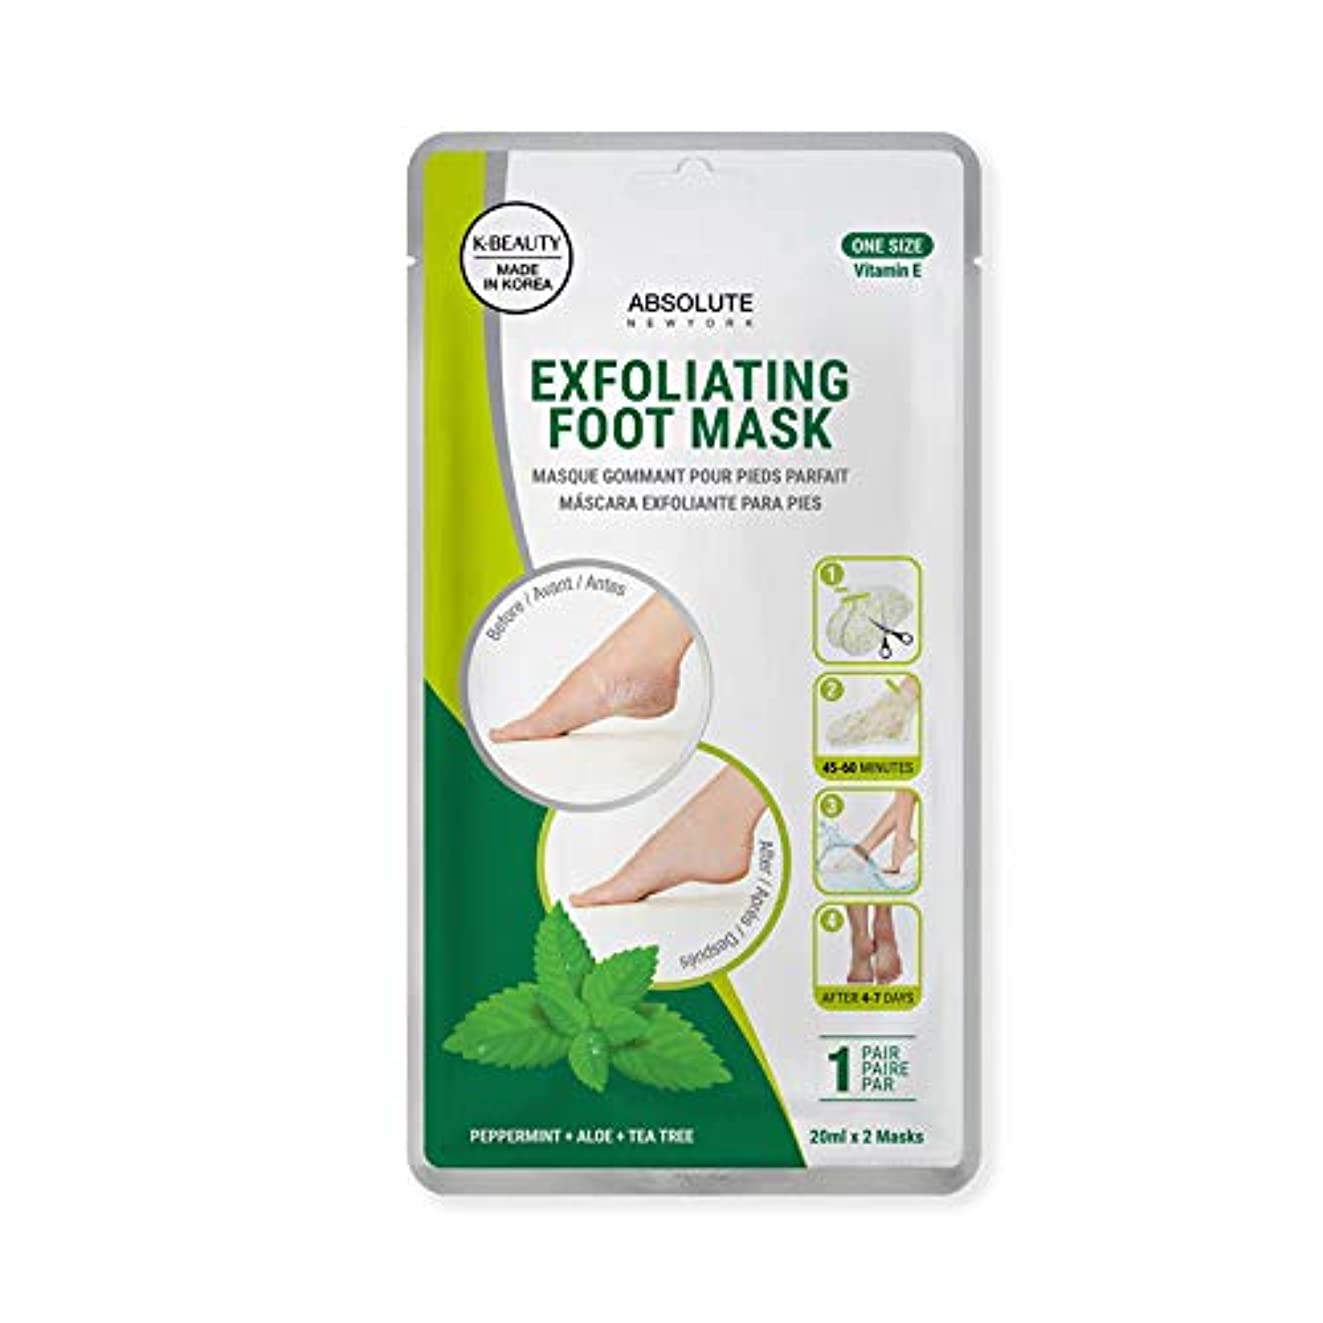 クラッチ偏心同僚(6 Pack) ABSOLUTE Exfoliating Foot Mask - Peppermint + Aloe + Tea Tree (並行輸入品)